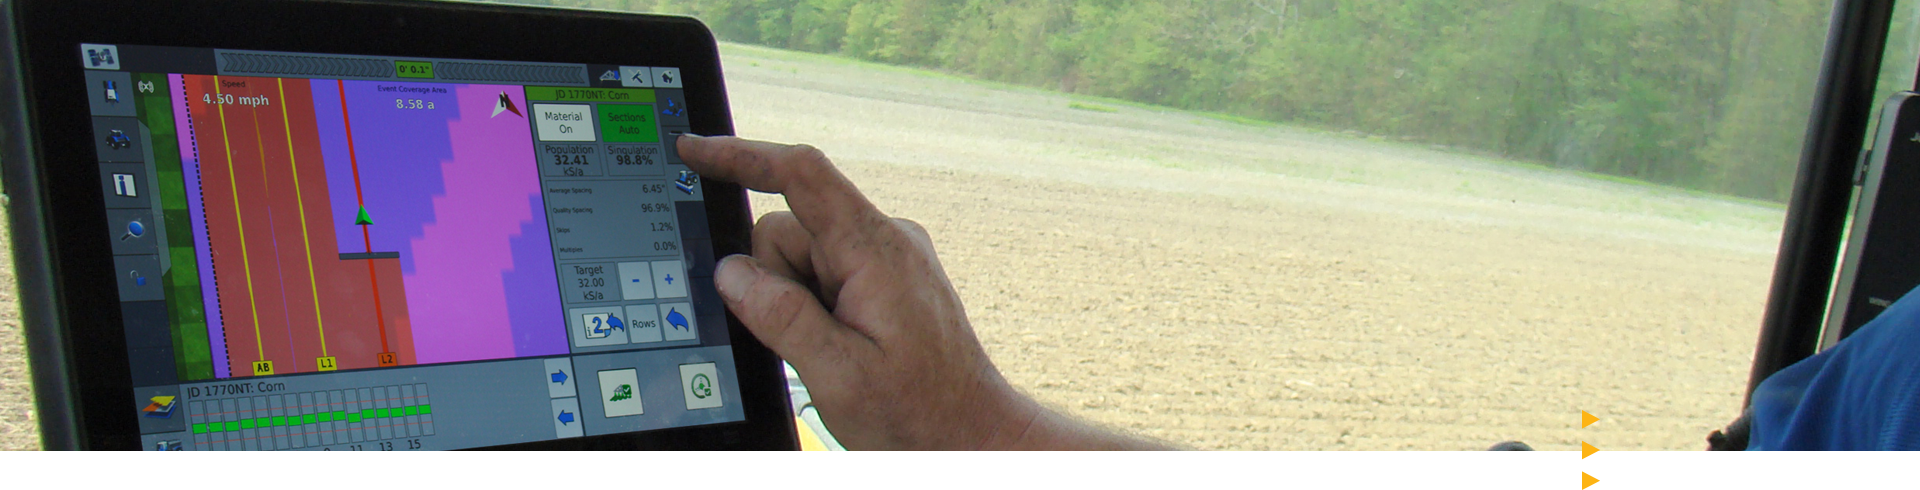 Trimble Ag Farmer Core